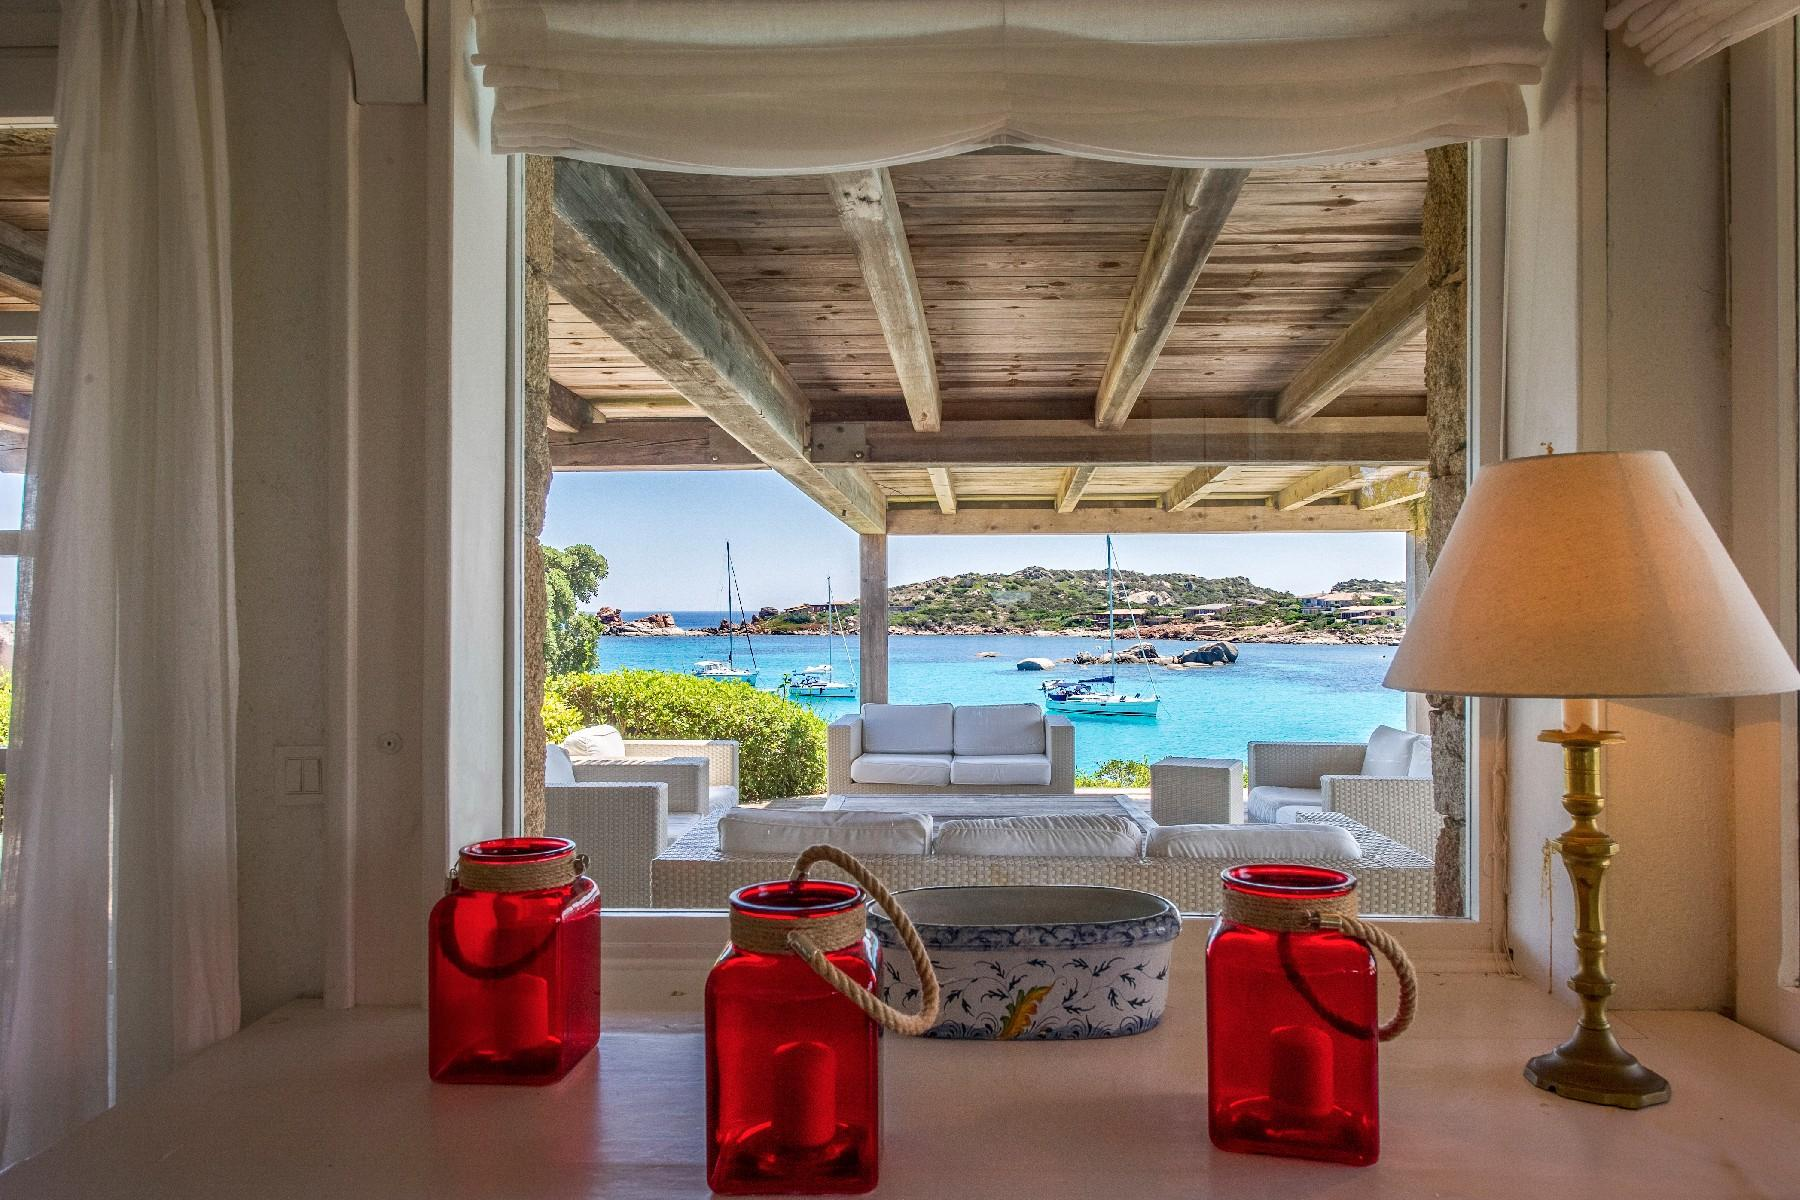 Cavallo Island, Corsica - Secluded villa with breathtaking seaview - 6